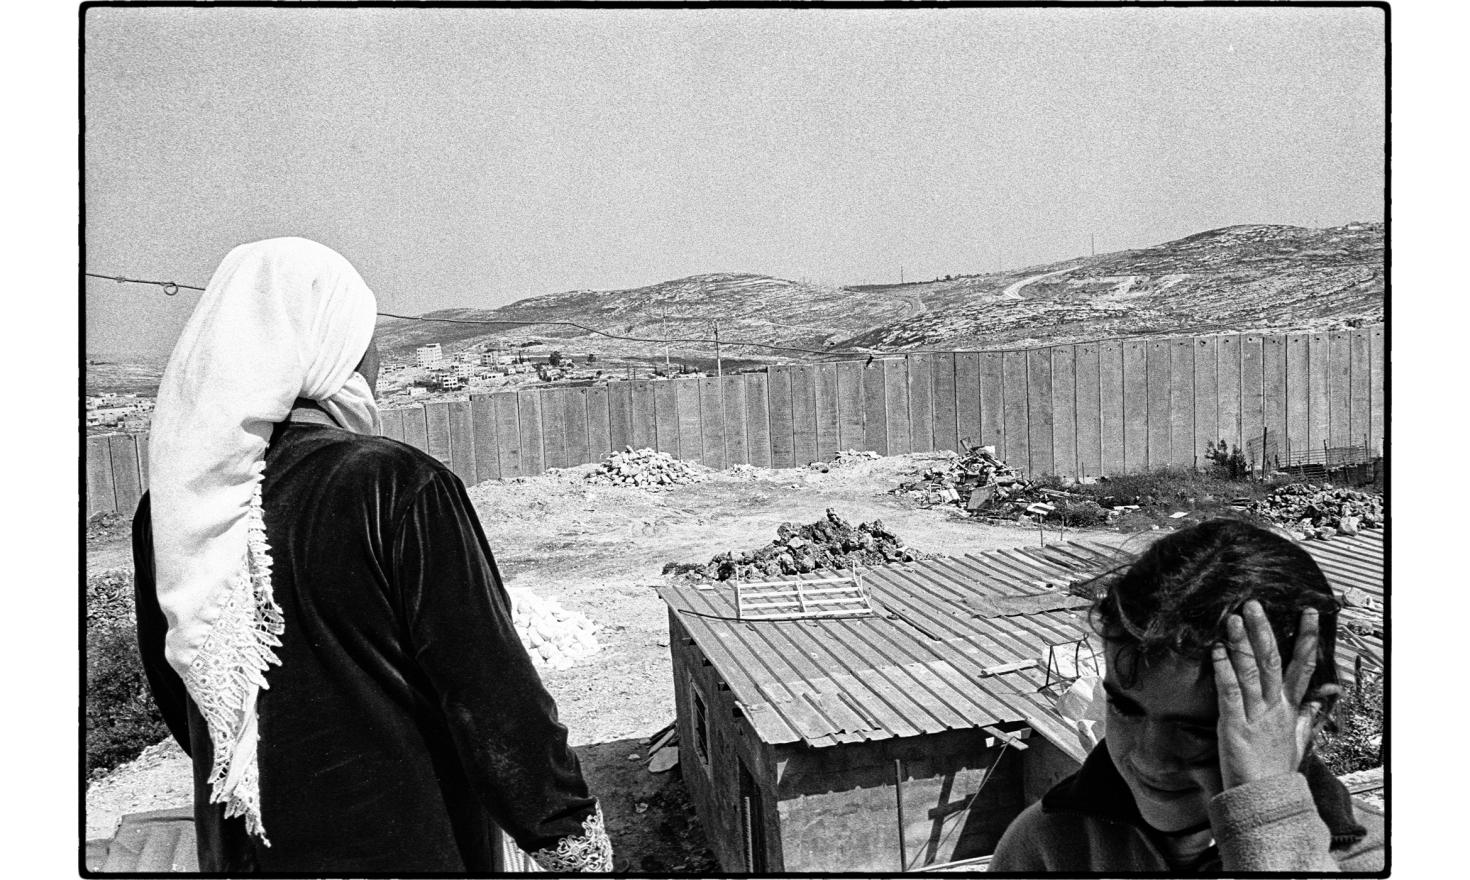 View from a home along Ramallah highway, outside jerusalem. March 2005.